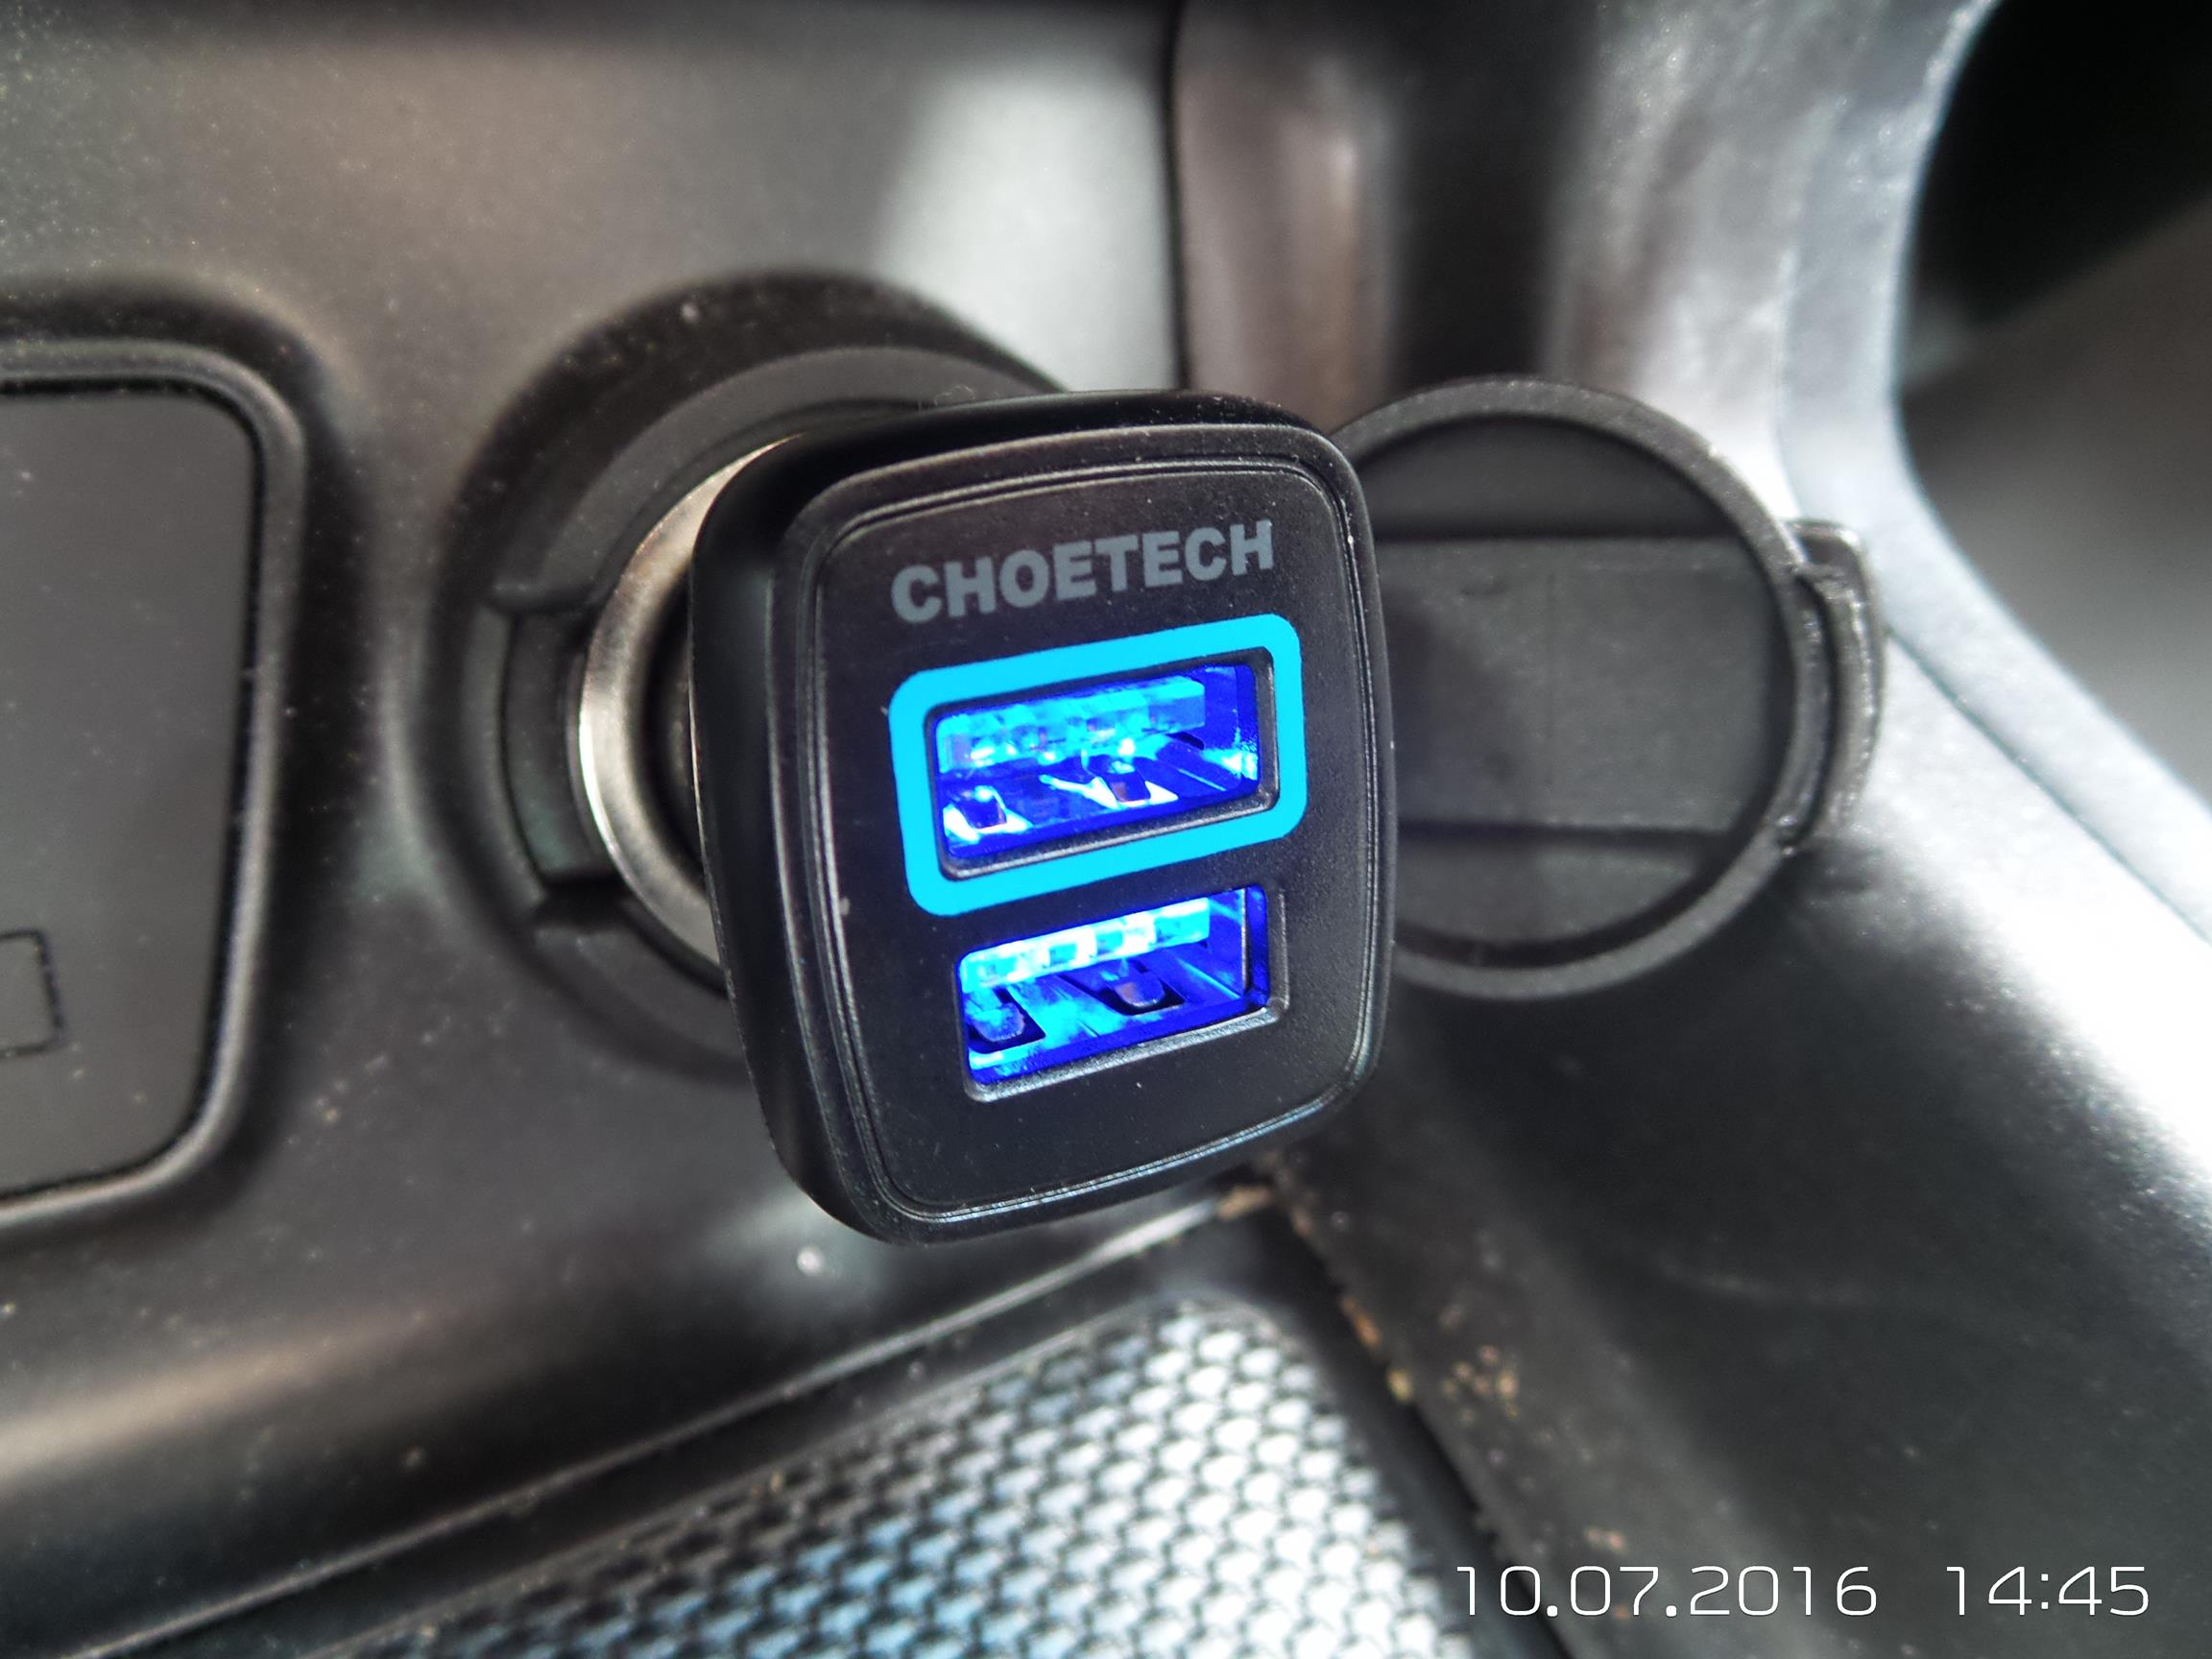 Choetech 30W Quick Charge 3.0 USB Car Charger Review